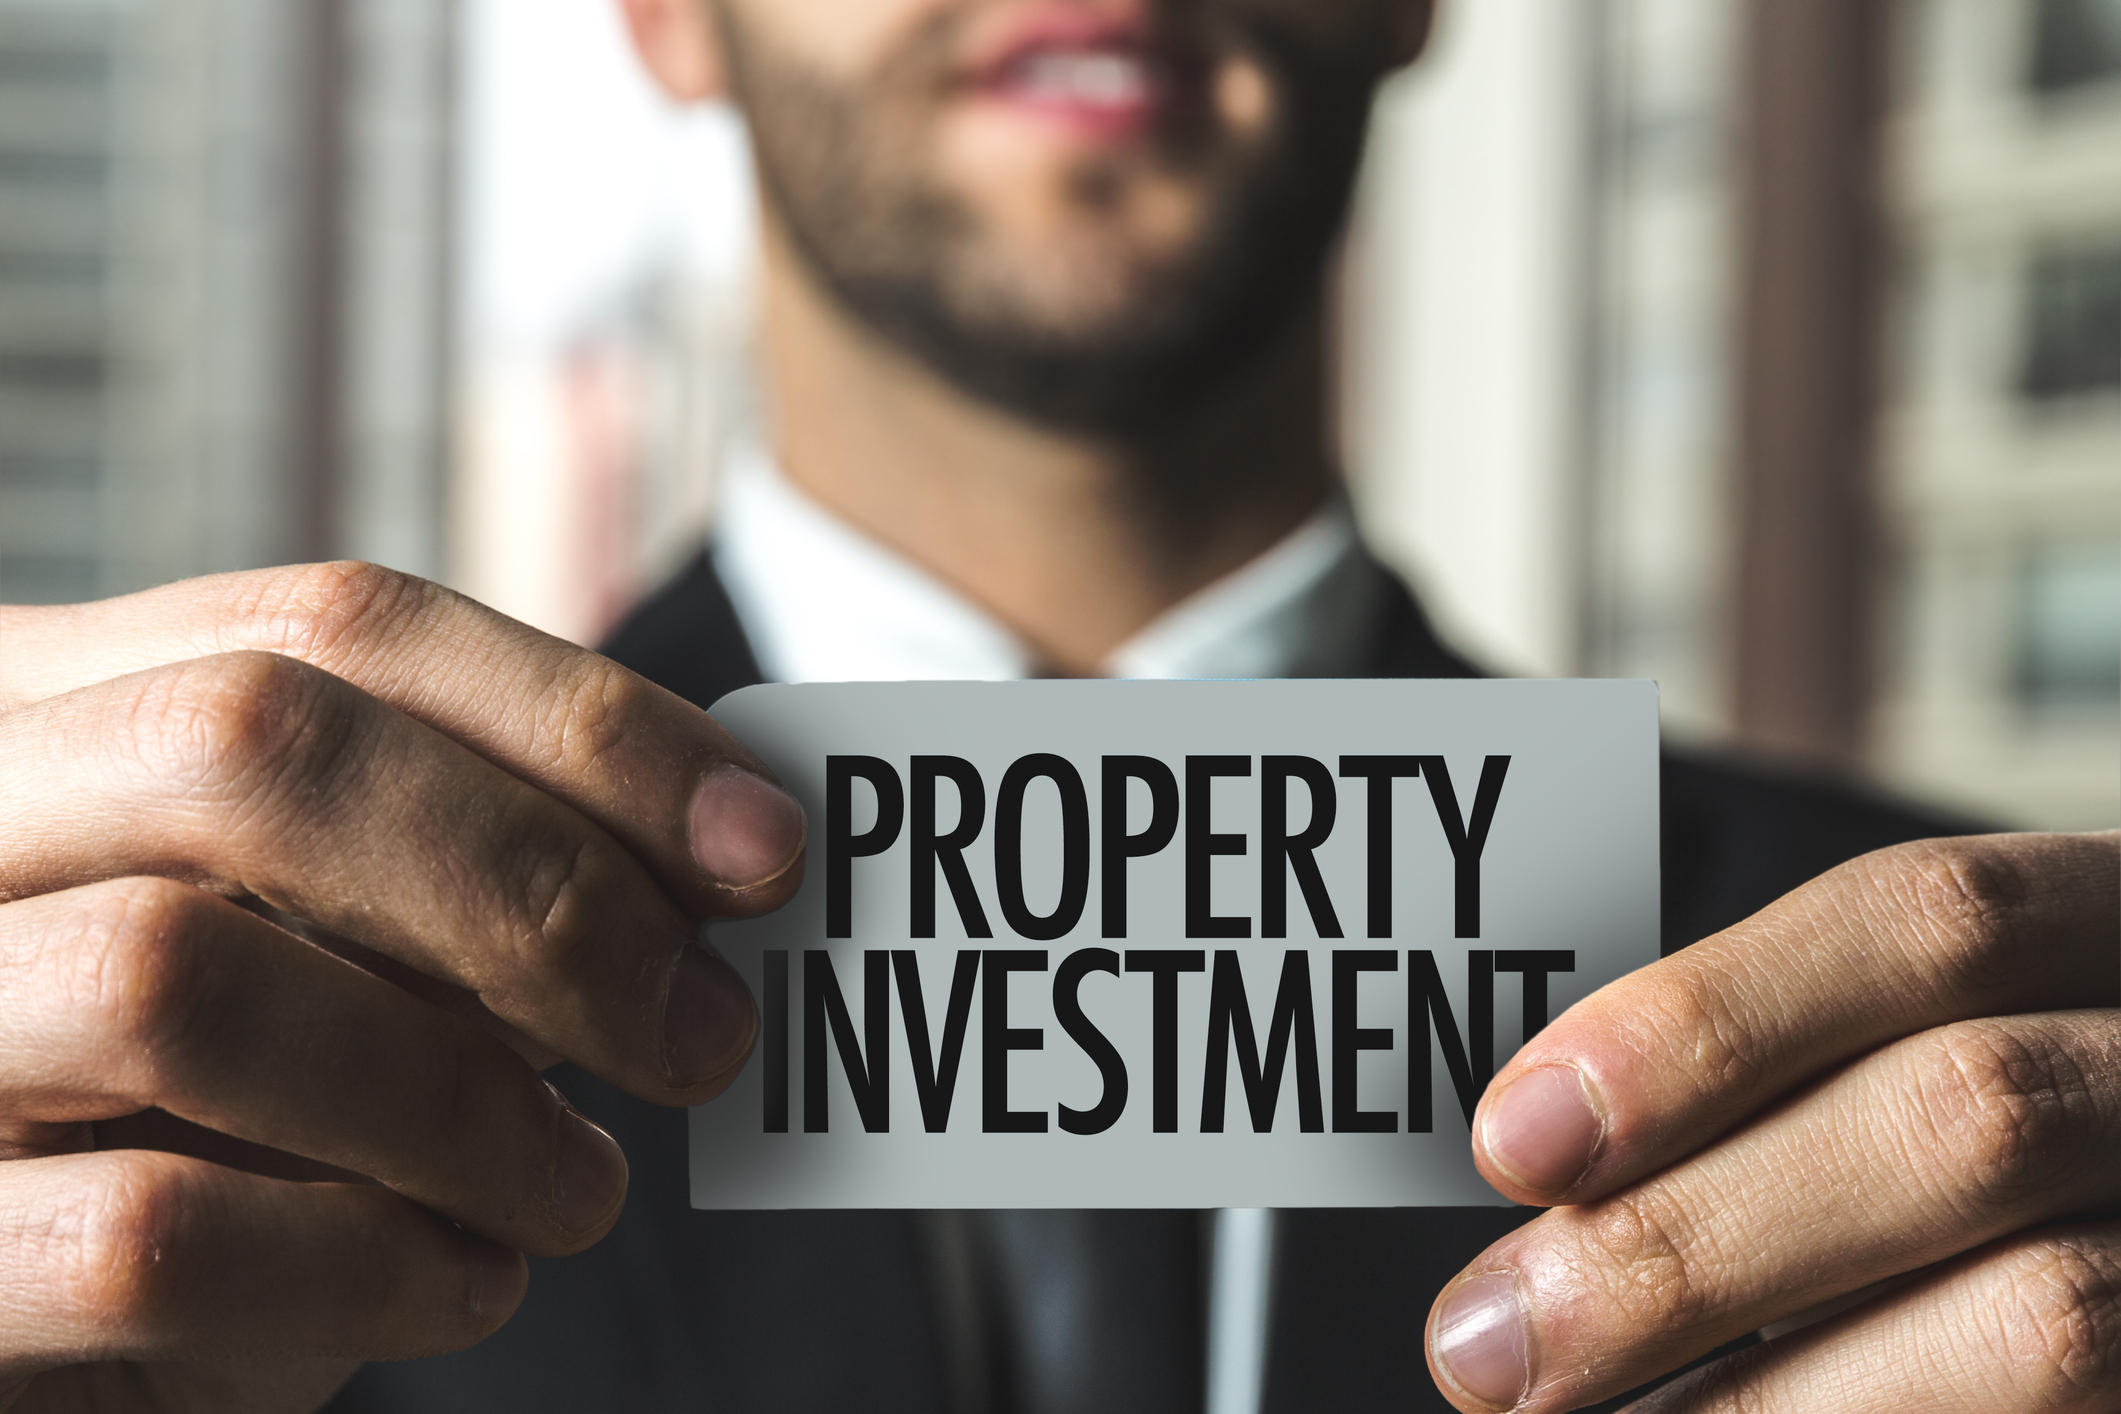 Young people 'increasingly investing in property' (Leaders)